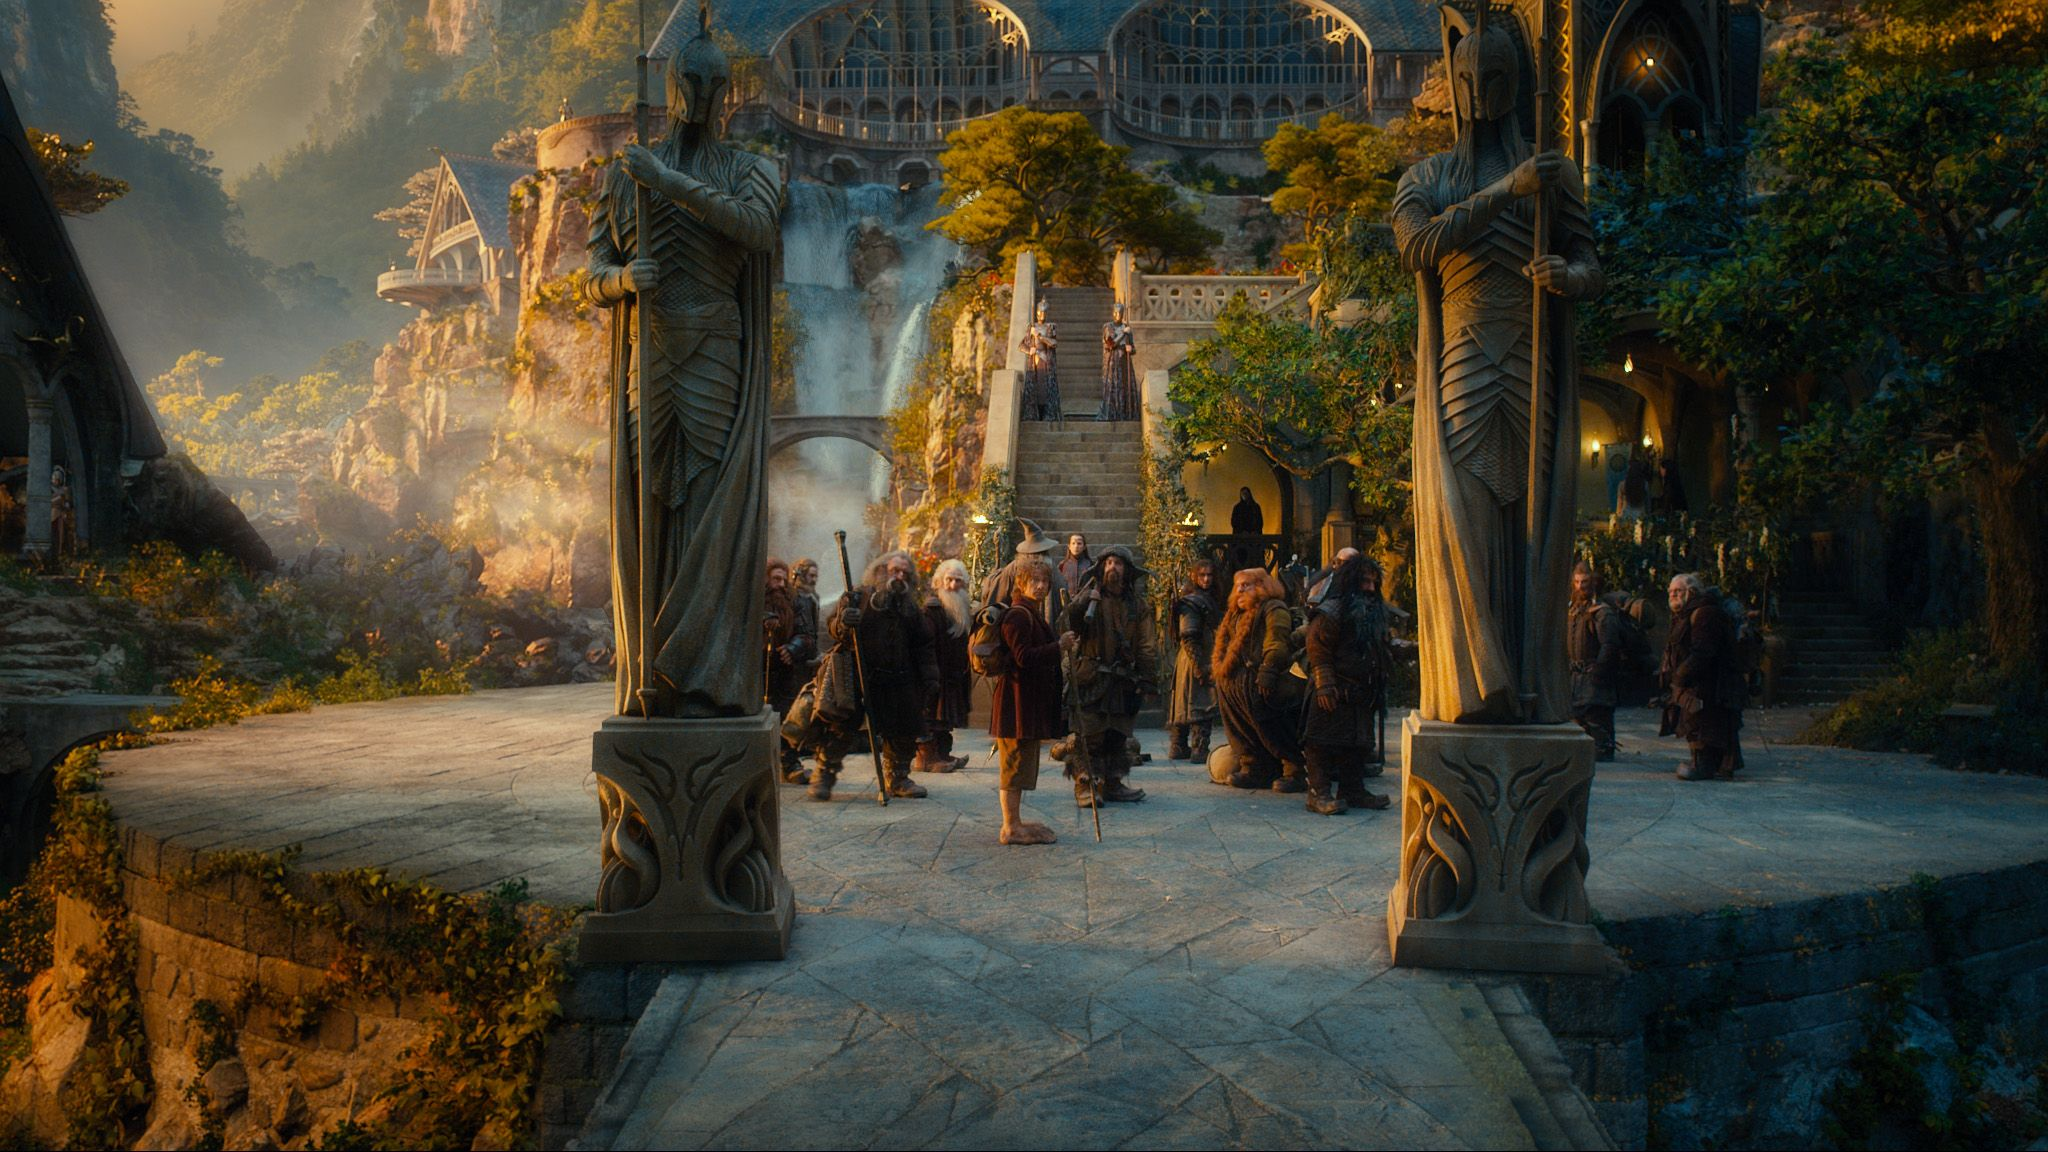 What Hobbit unexpected journey something is